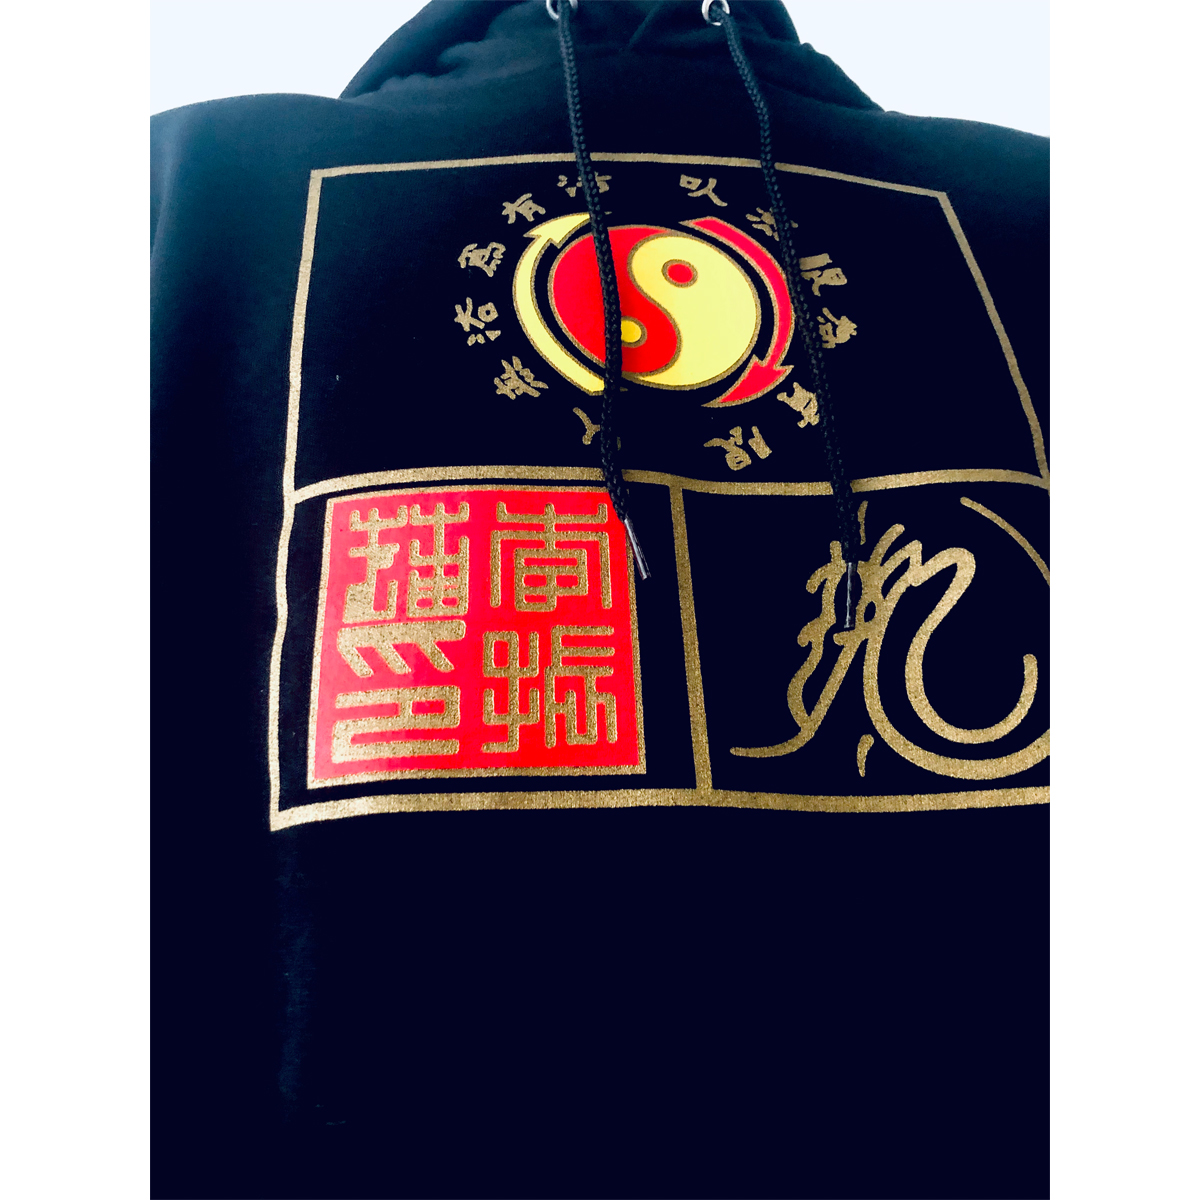 Jun Fan Jeet Kune Do Champion Pullover Hoodie